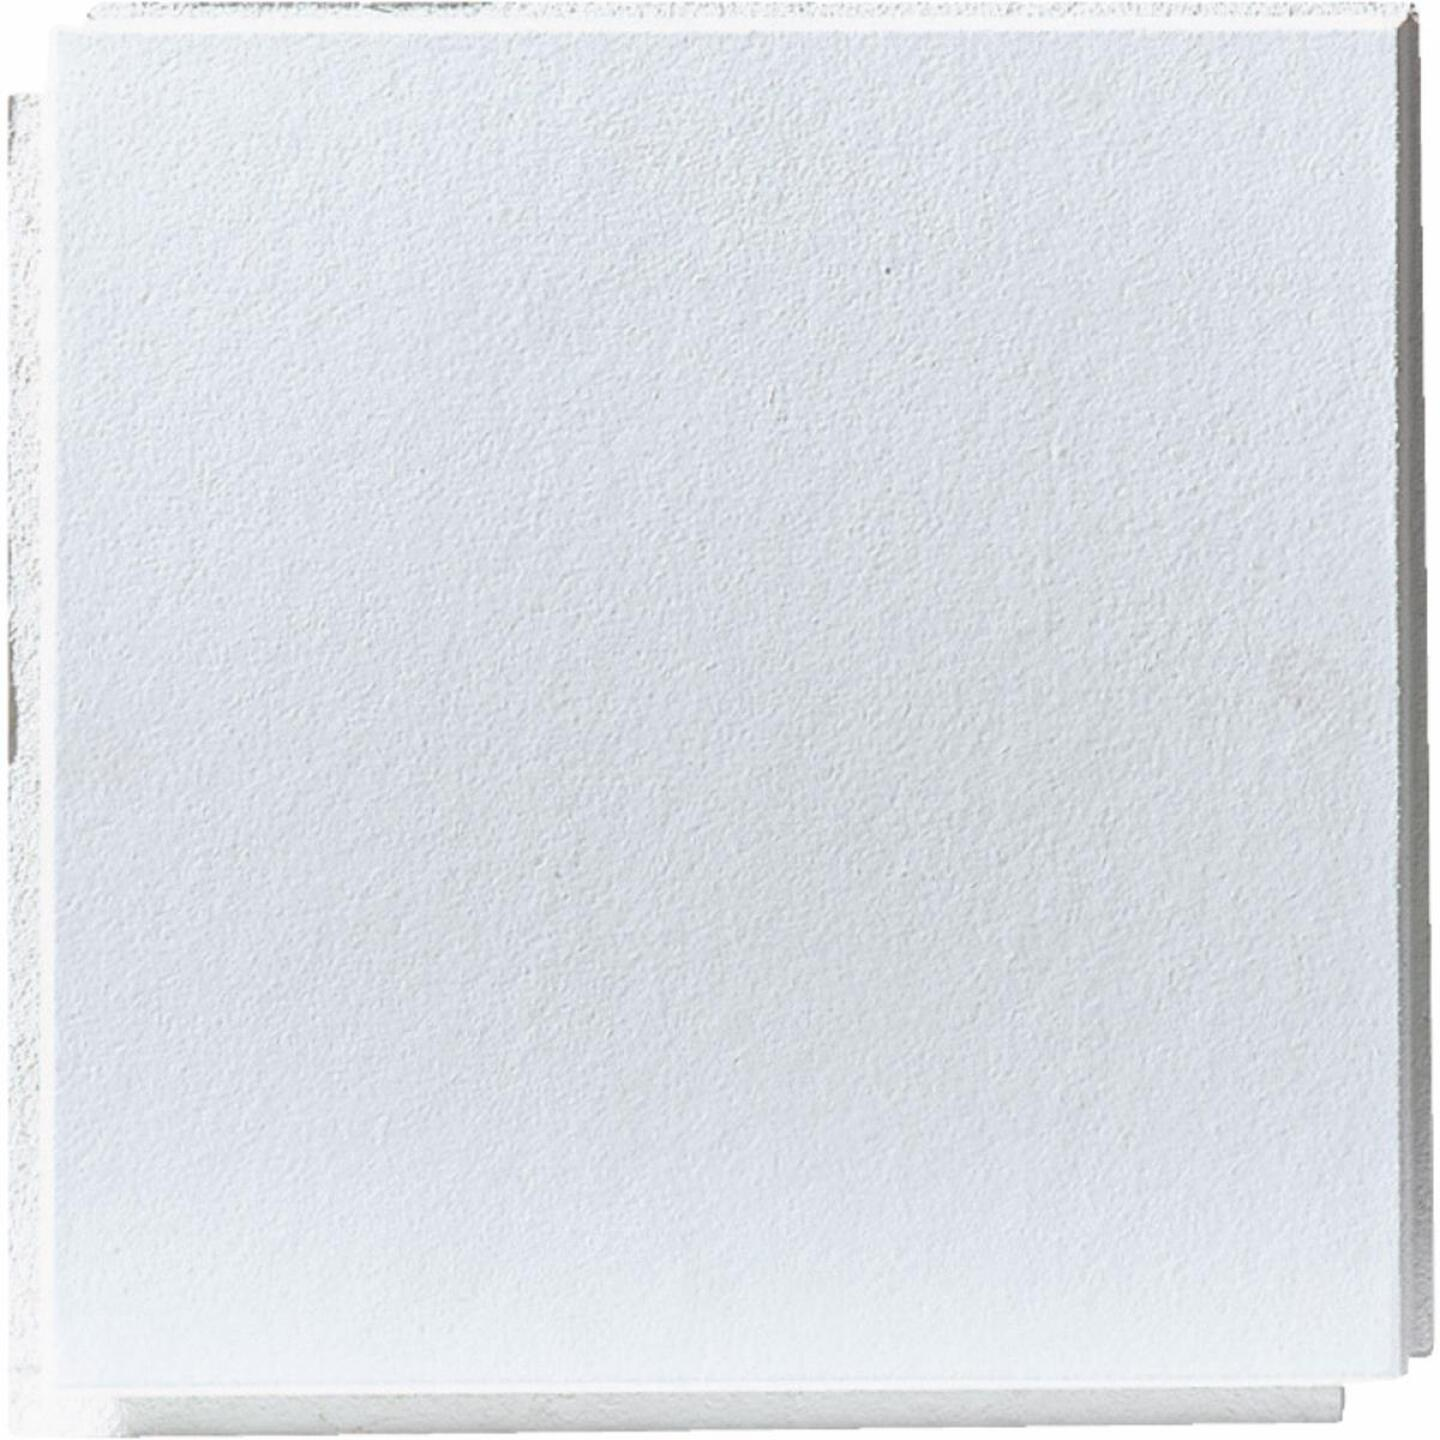 BP Silencio Chablis 12 In. x 12 In. White Wood Fiber Nonsuspended Ceiling Tile (32-Count) Image 1